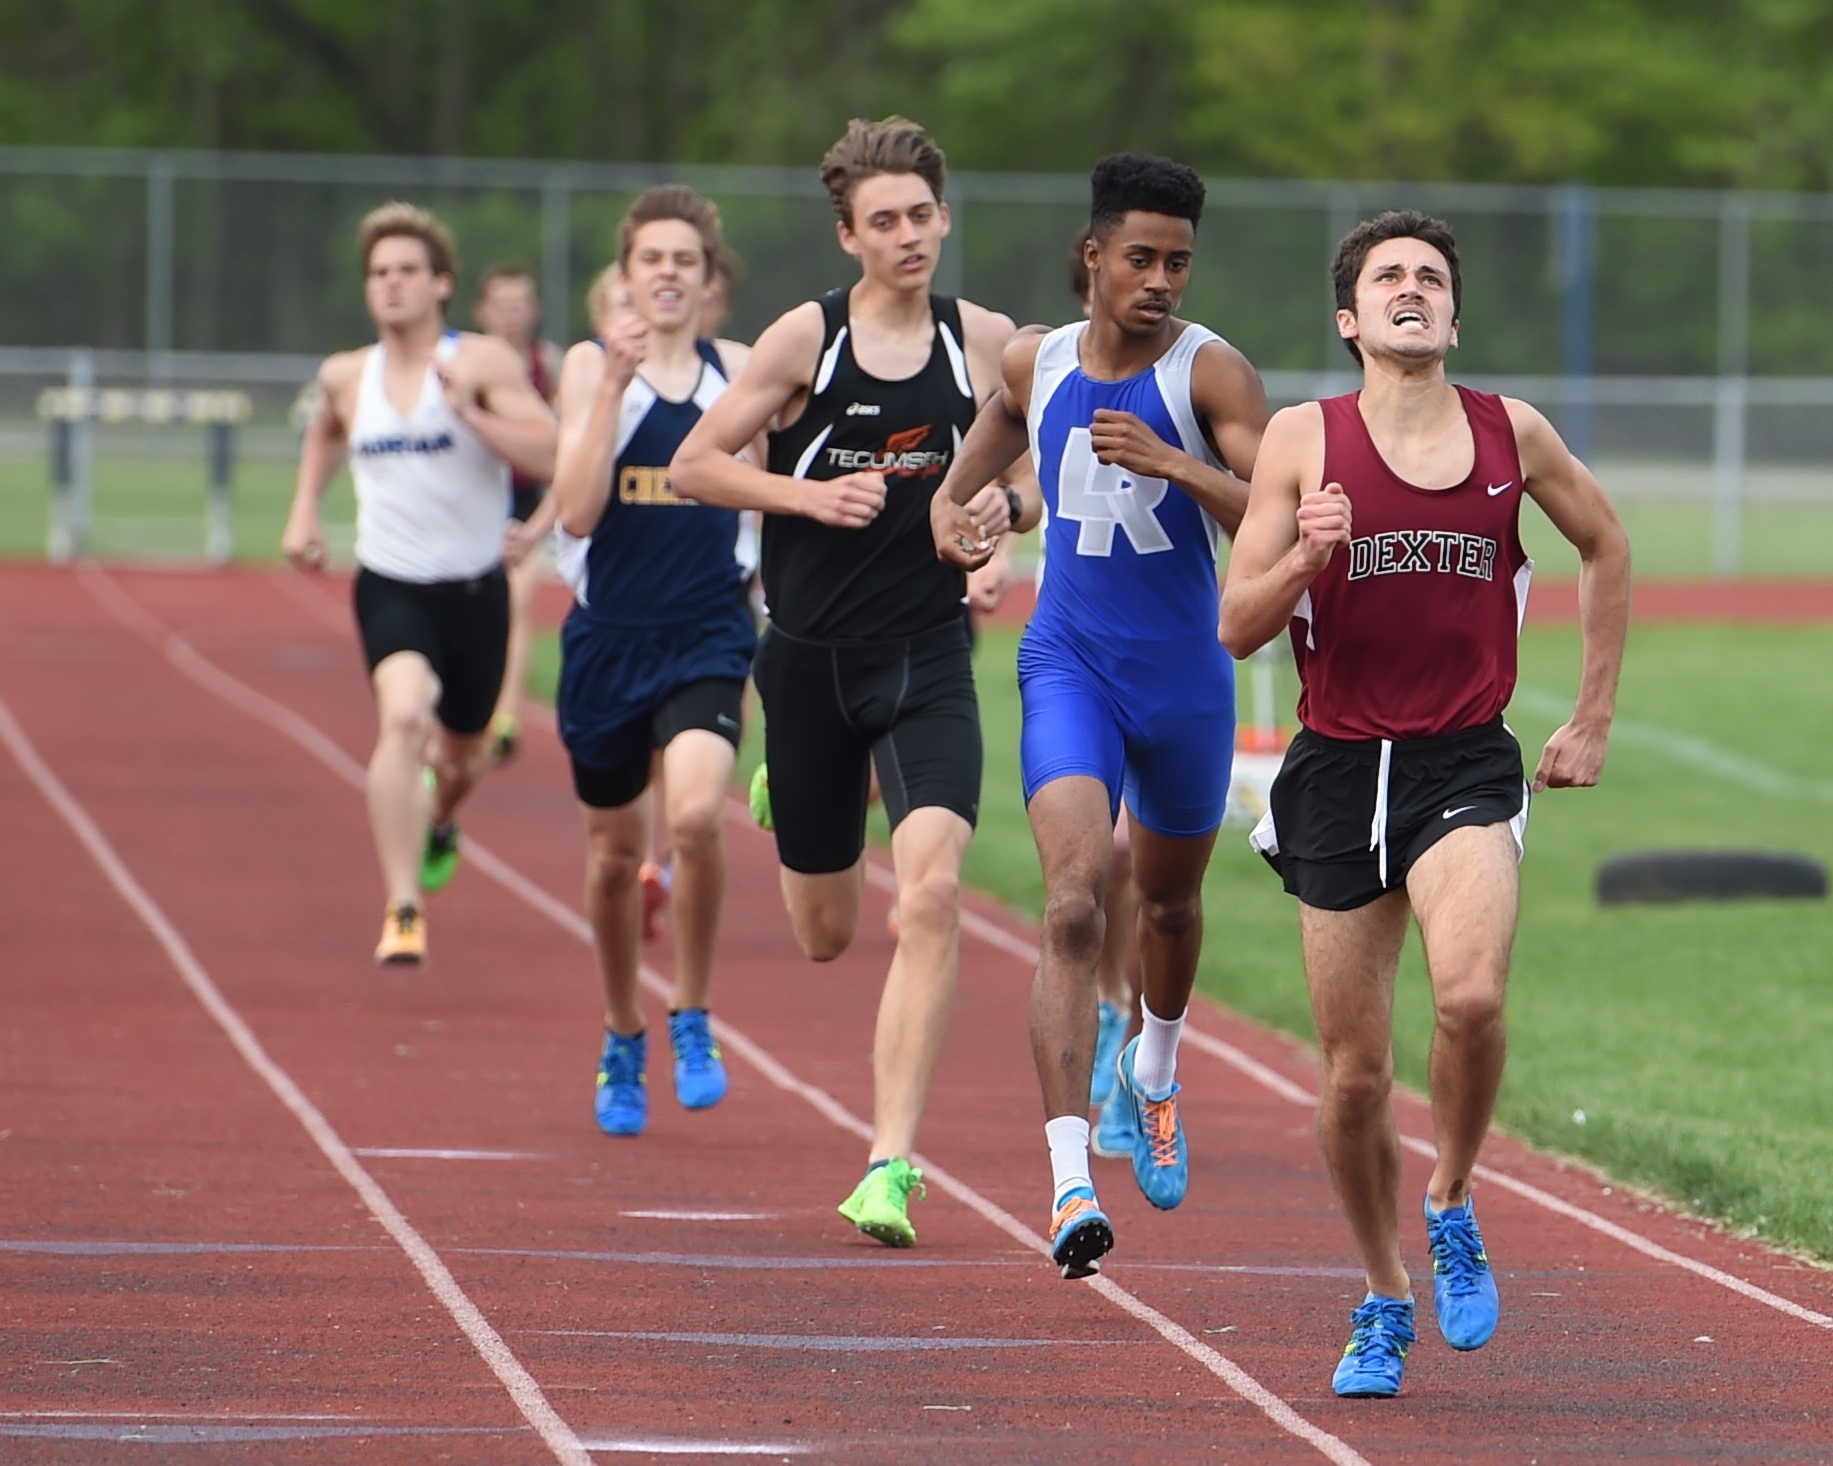 High School Track Competition